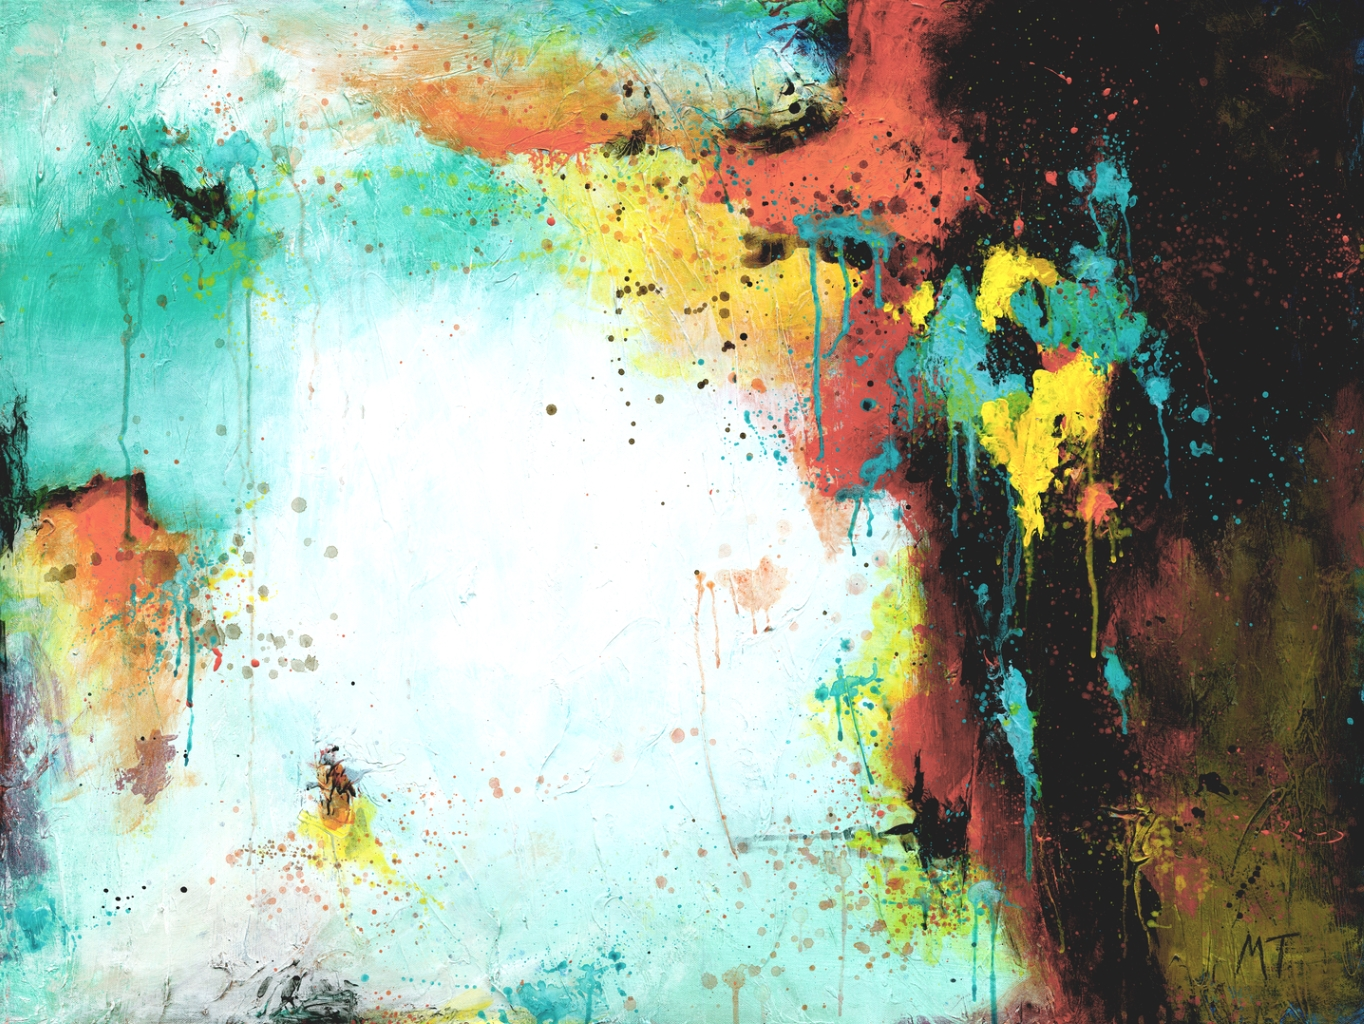 mandy_thompson_abstract_time_painting_retrospect.jpg